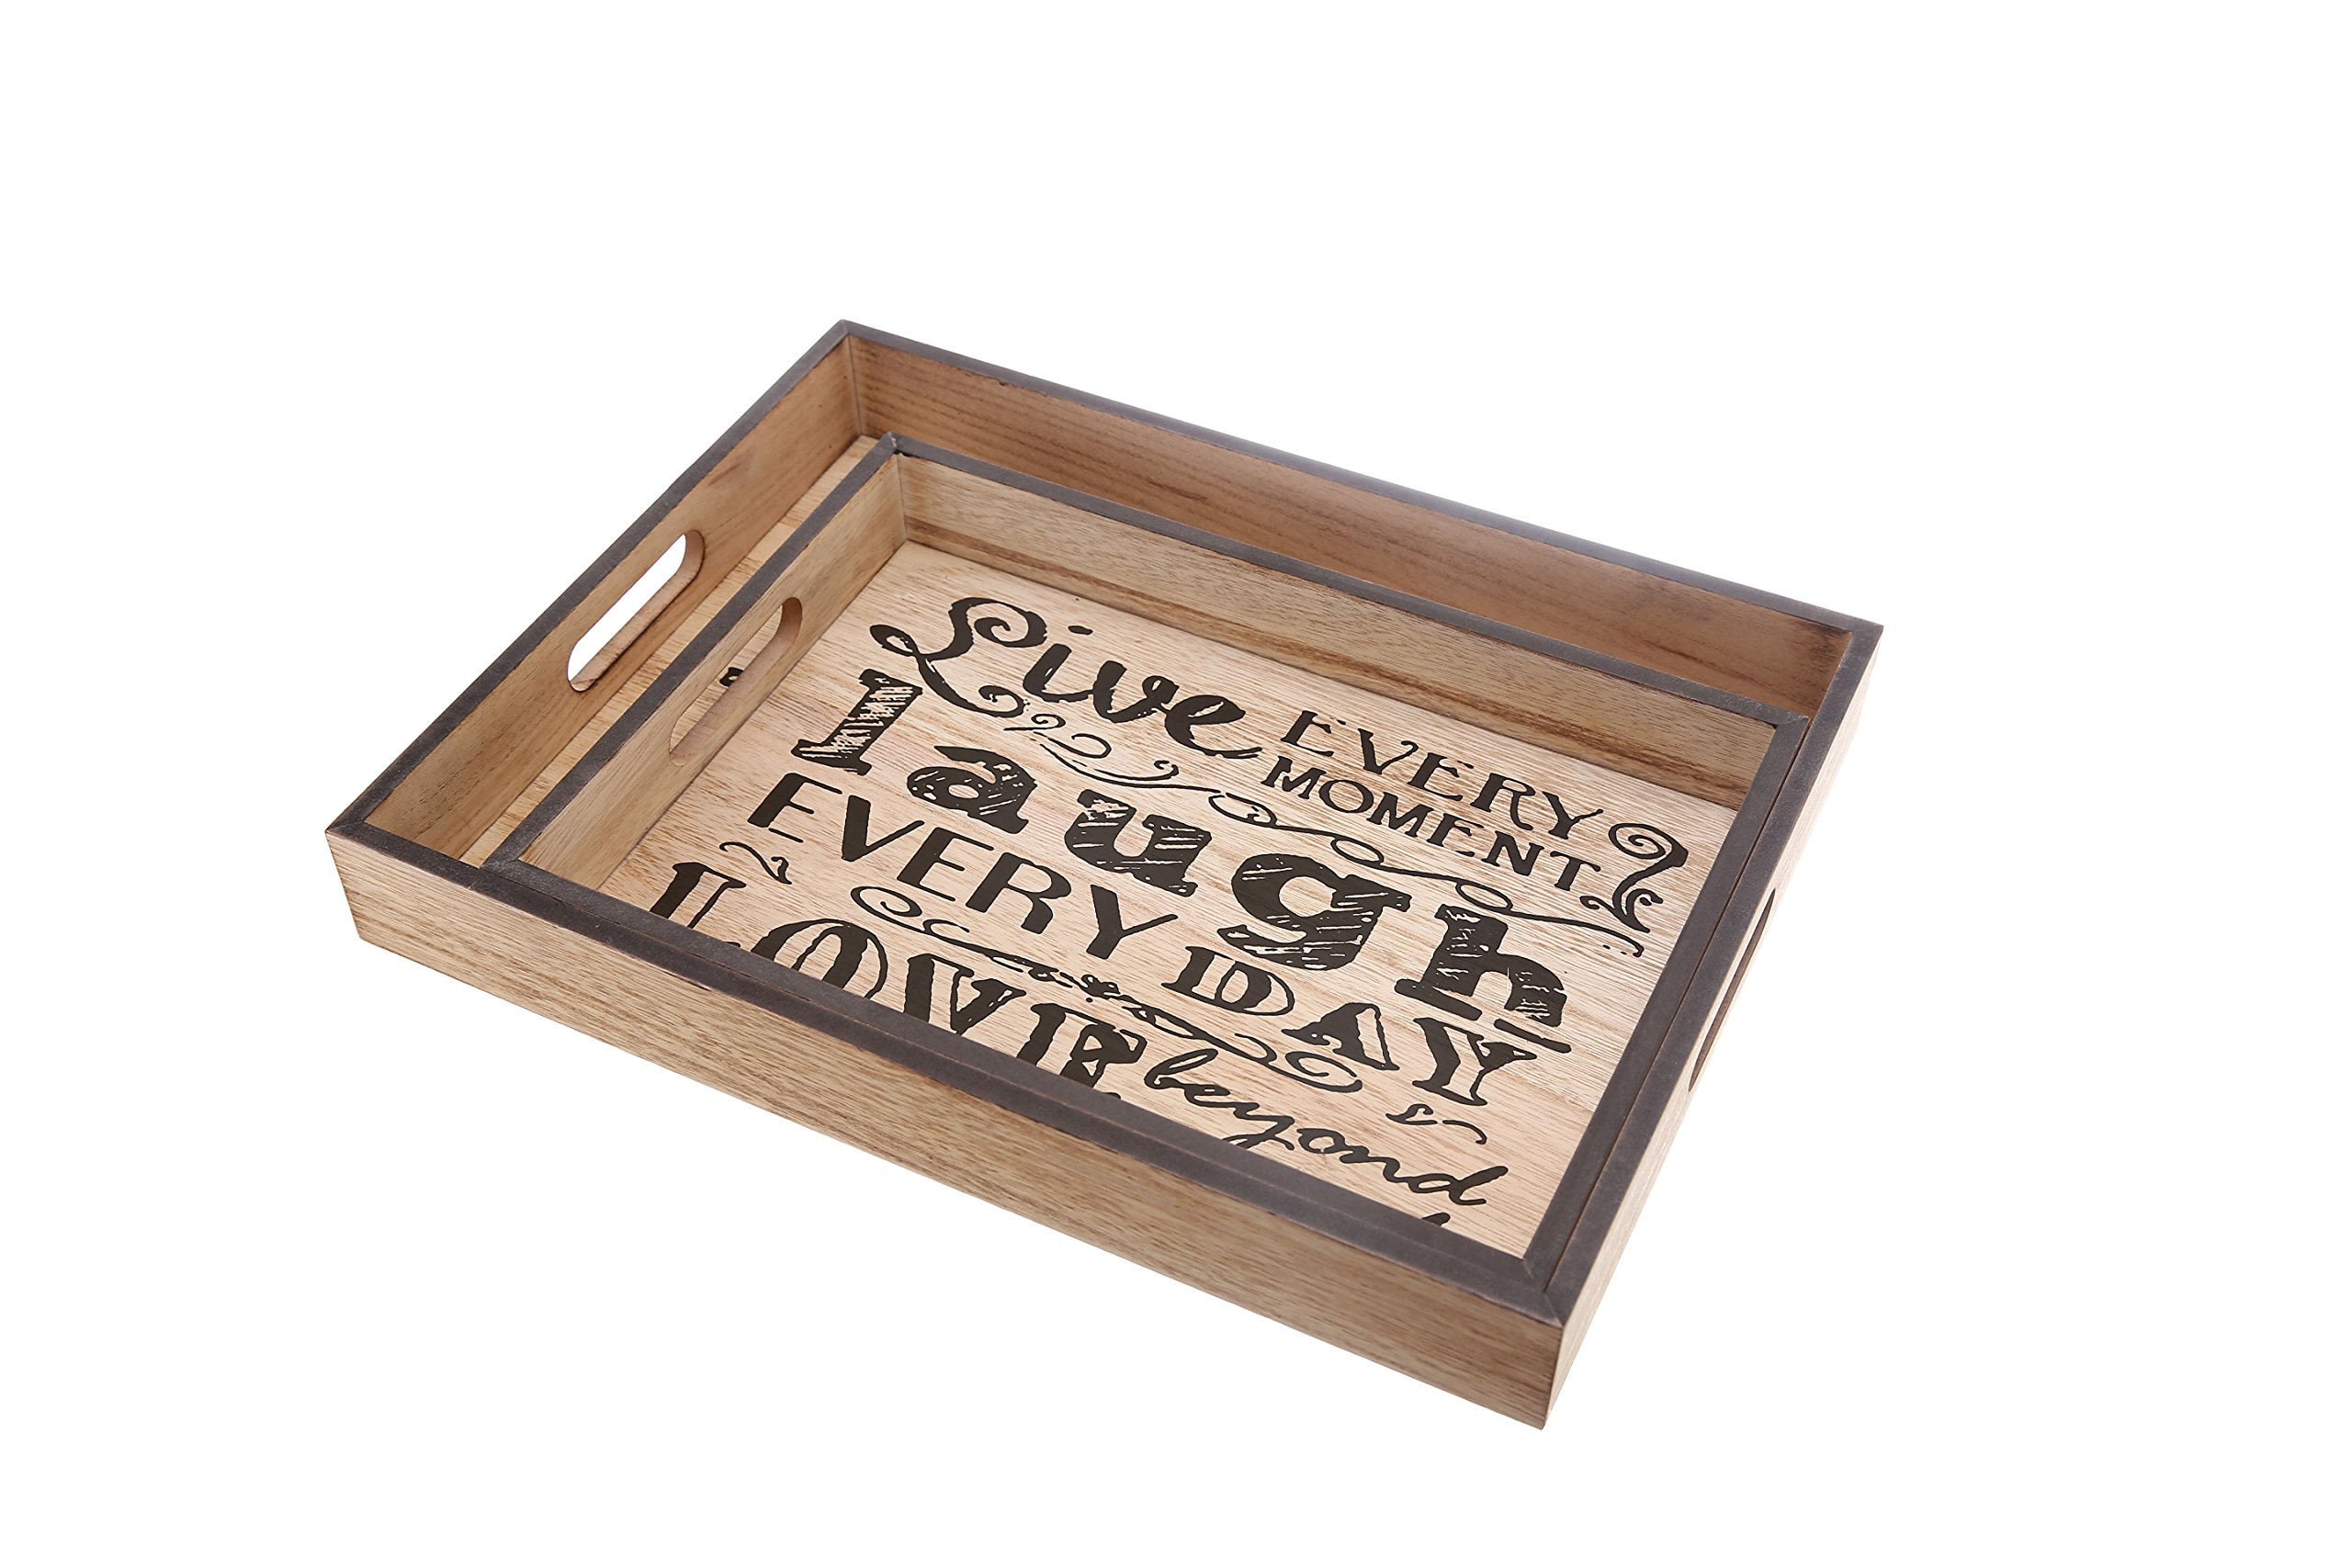 2 PIECES Wooden coffee trays with handles, modern printed trays for serving or decoration, Natural wood crafted trays with Live every moment, laugh every day, Love beyond words phrase